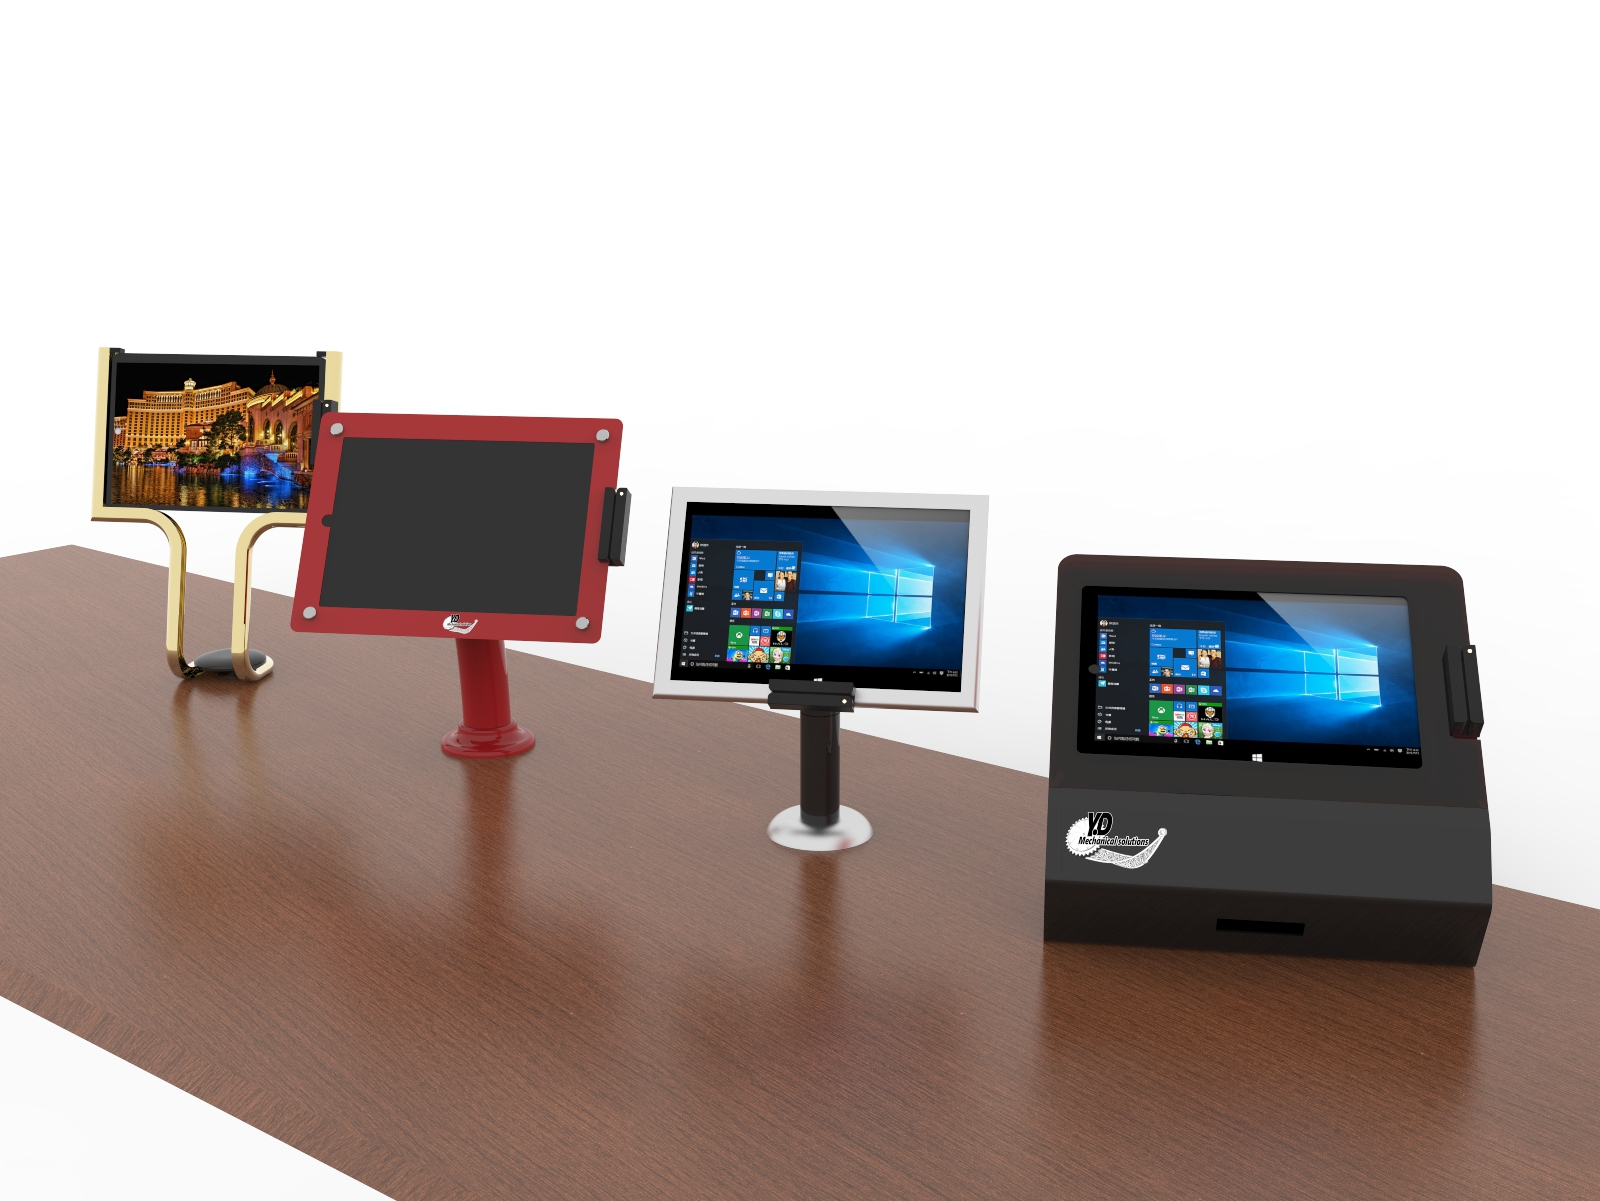 The Tablet stands project